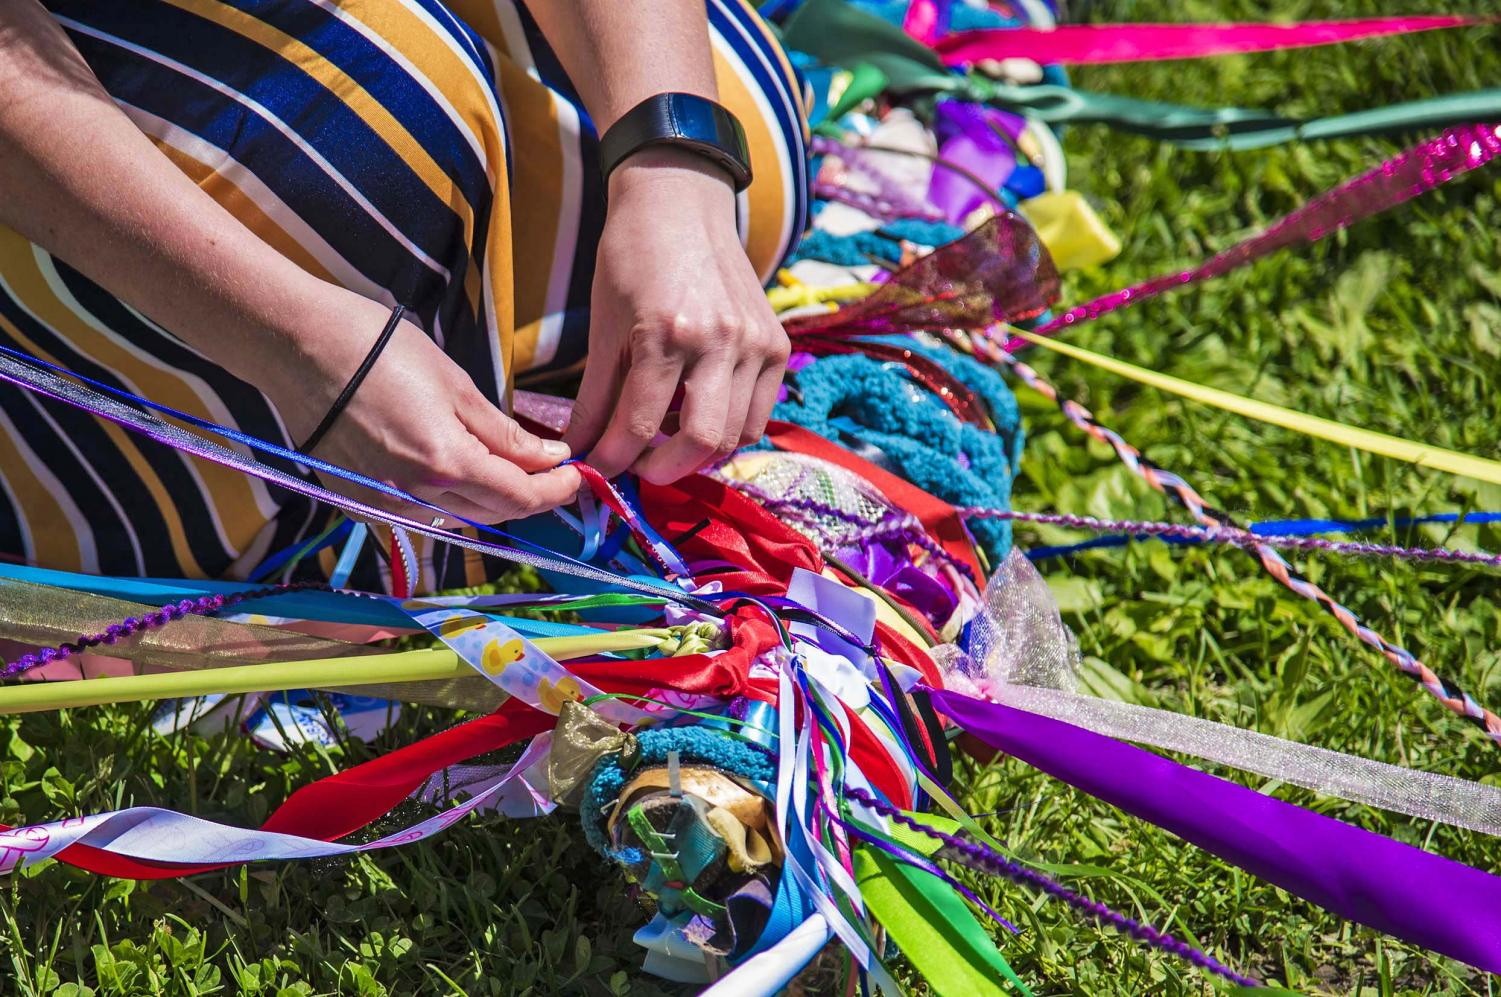 Members+of+SIPA+tie+their+ribbons+to+the+Maypole+during+the+Beltane+Ritual+at+Giant+City+State+Park+April+28%2C+2019.+The+sacred+ritual+is+to+represent+fertility+and+growth+that+will+give+way+to+good+things+in+life.+